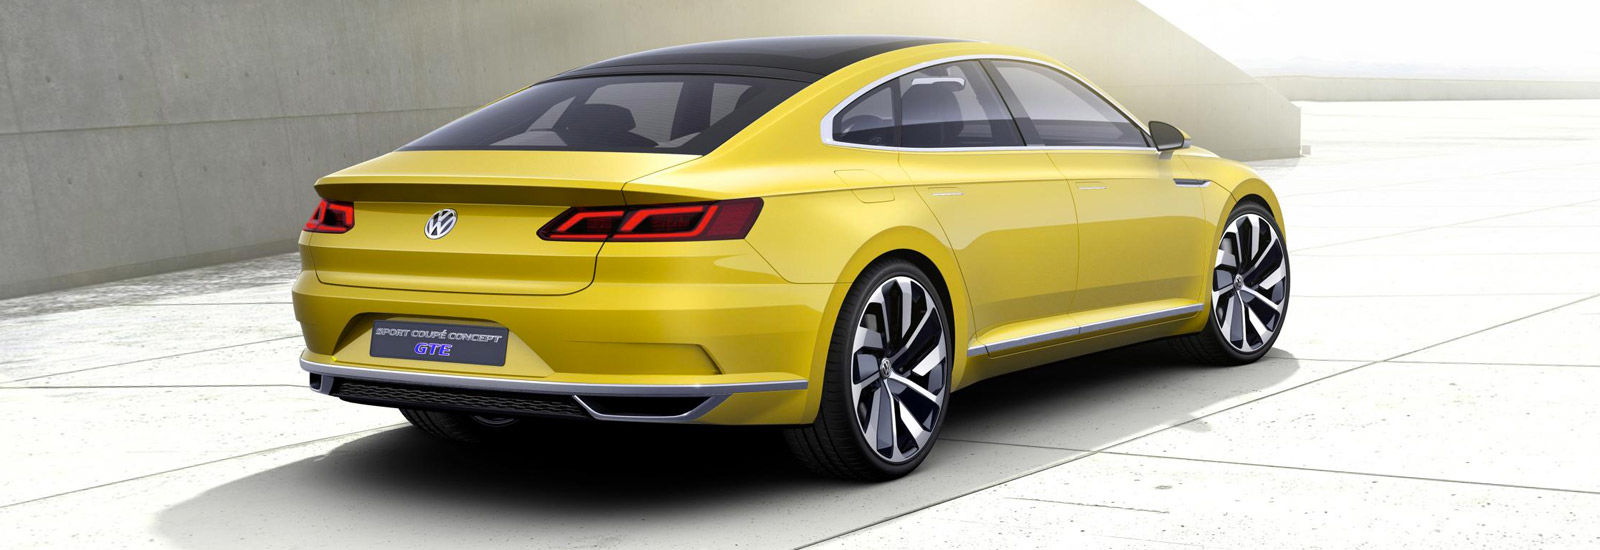 2017 vw arteon new cc price specs release date carwow. Black Bedroom Furniture Sets. Home Design Ideas